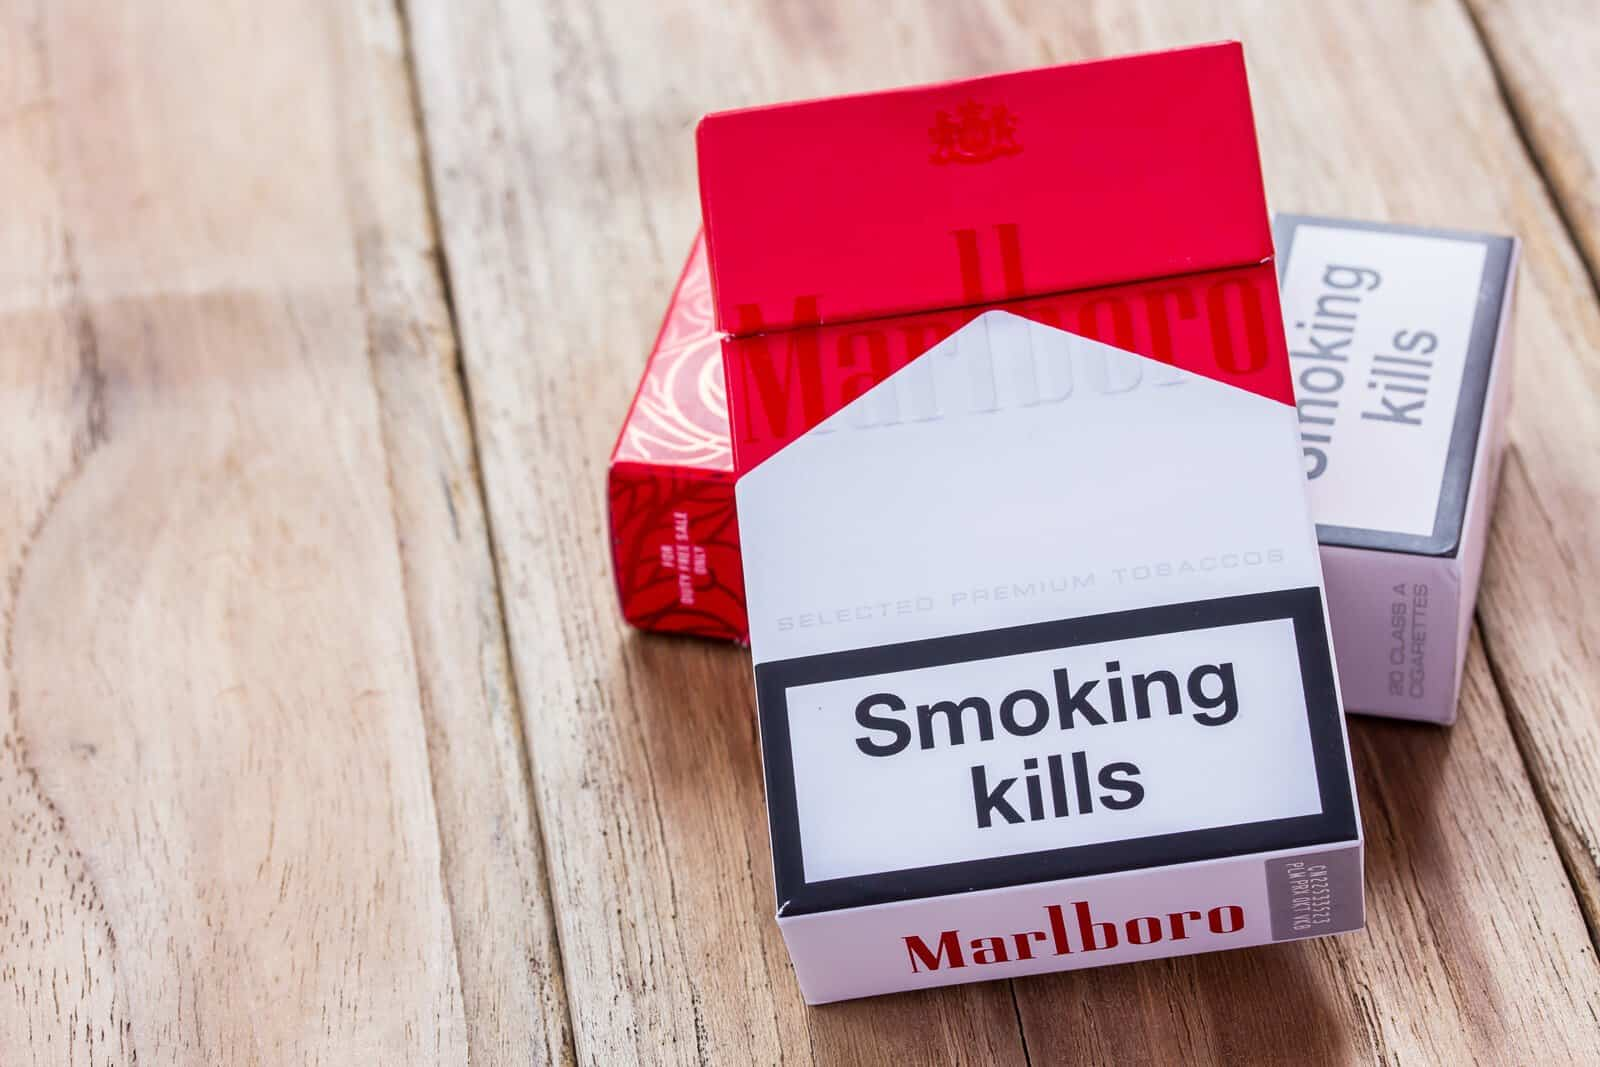 Marlboro Owner Altria Invested $1.8 Billion in Cronos Group